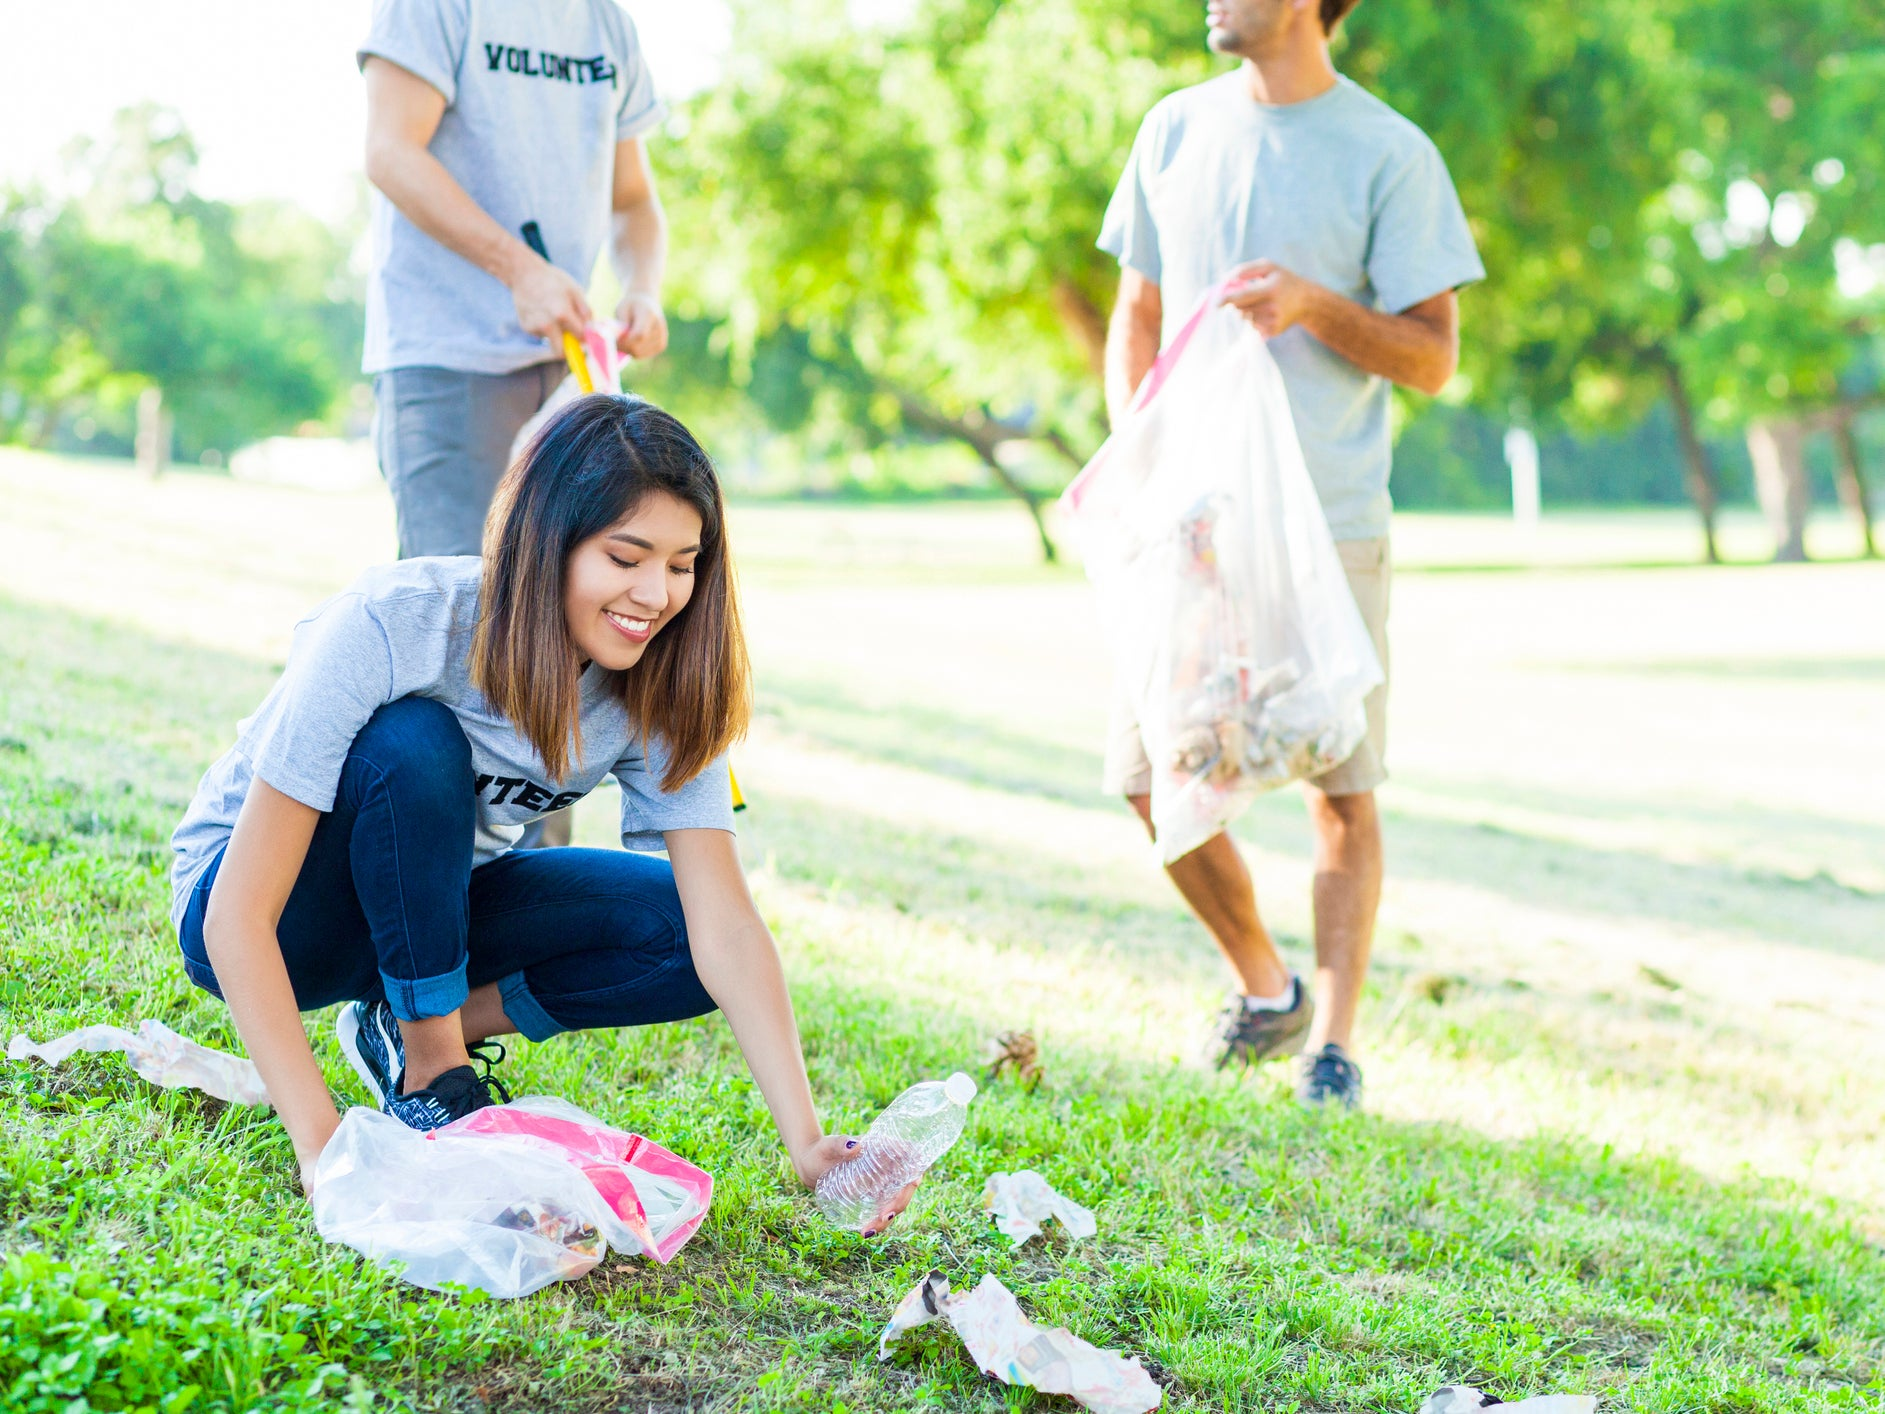 #Trashtag: Viral litter clean-up challenge inspires Internet users to 'make the world a better place'